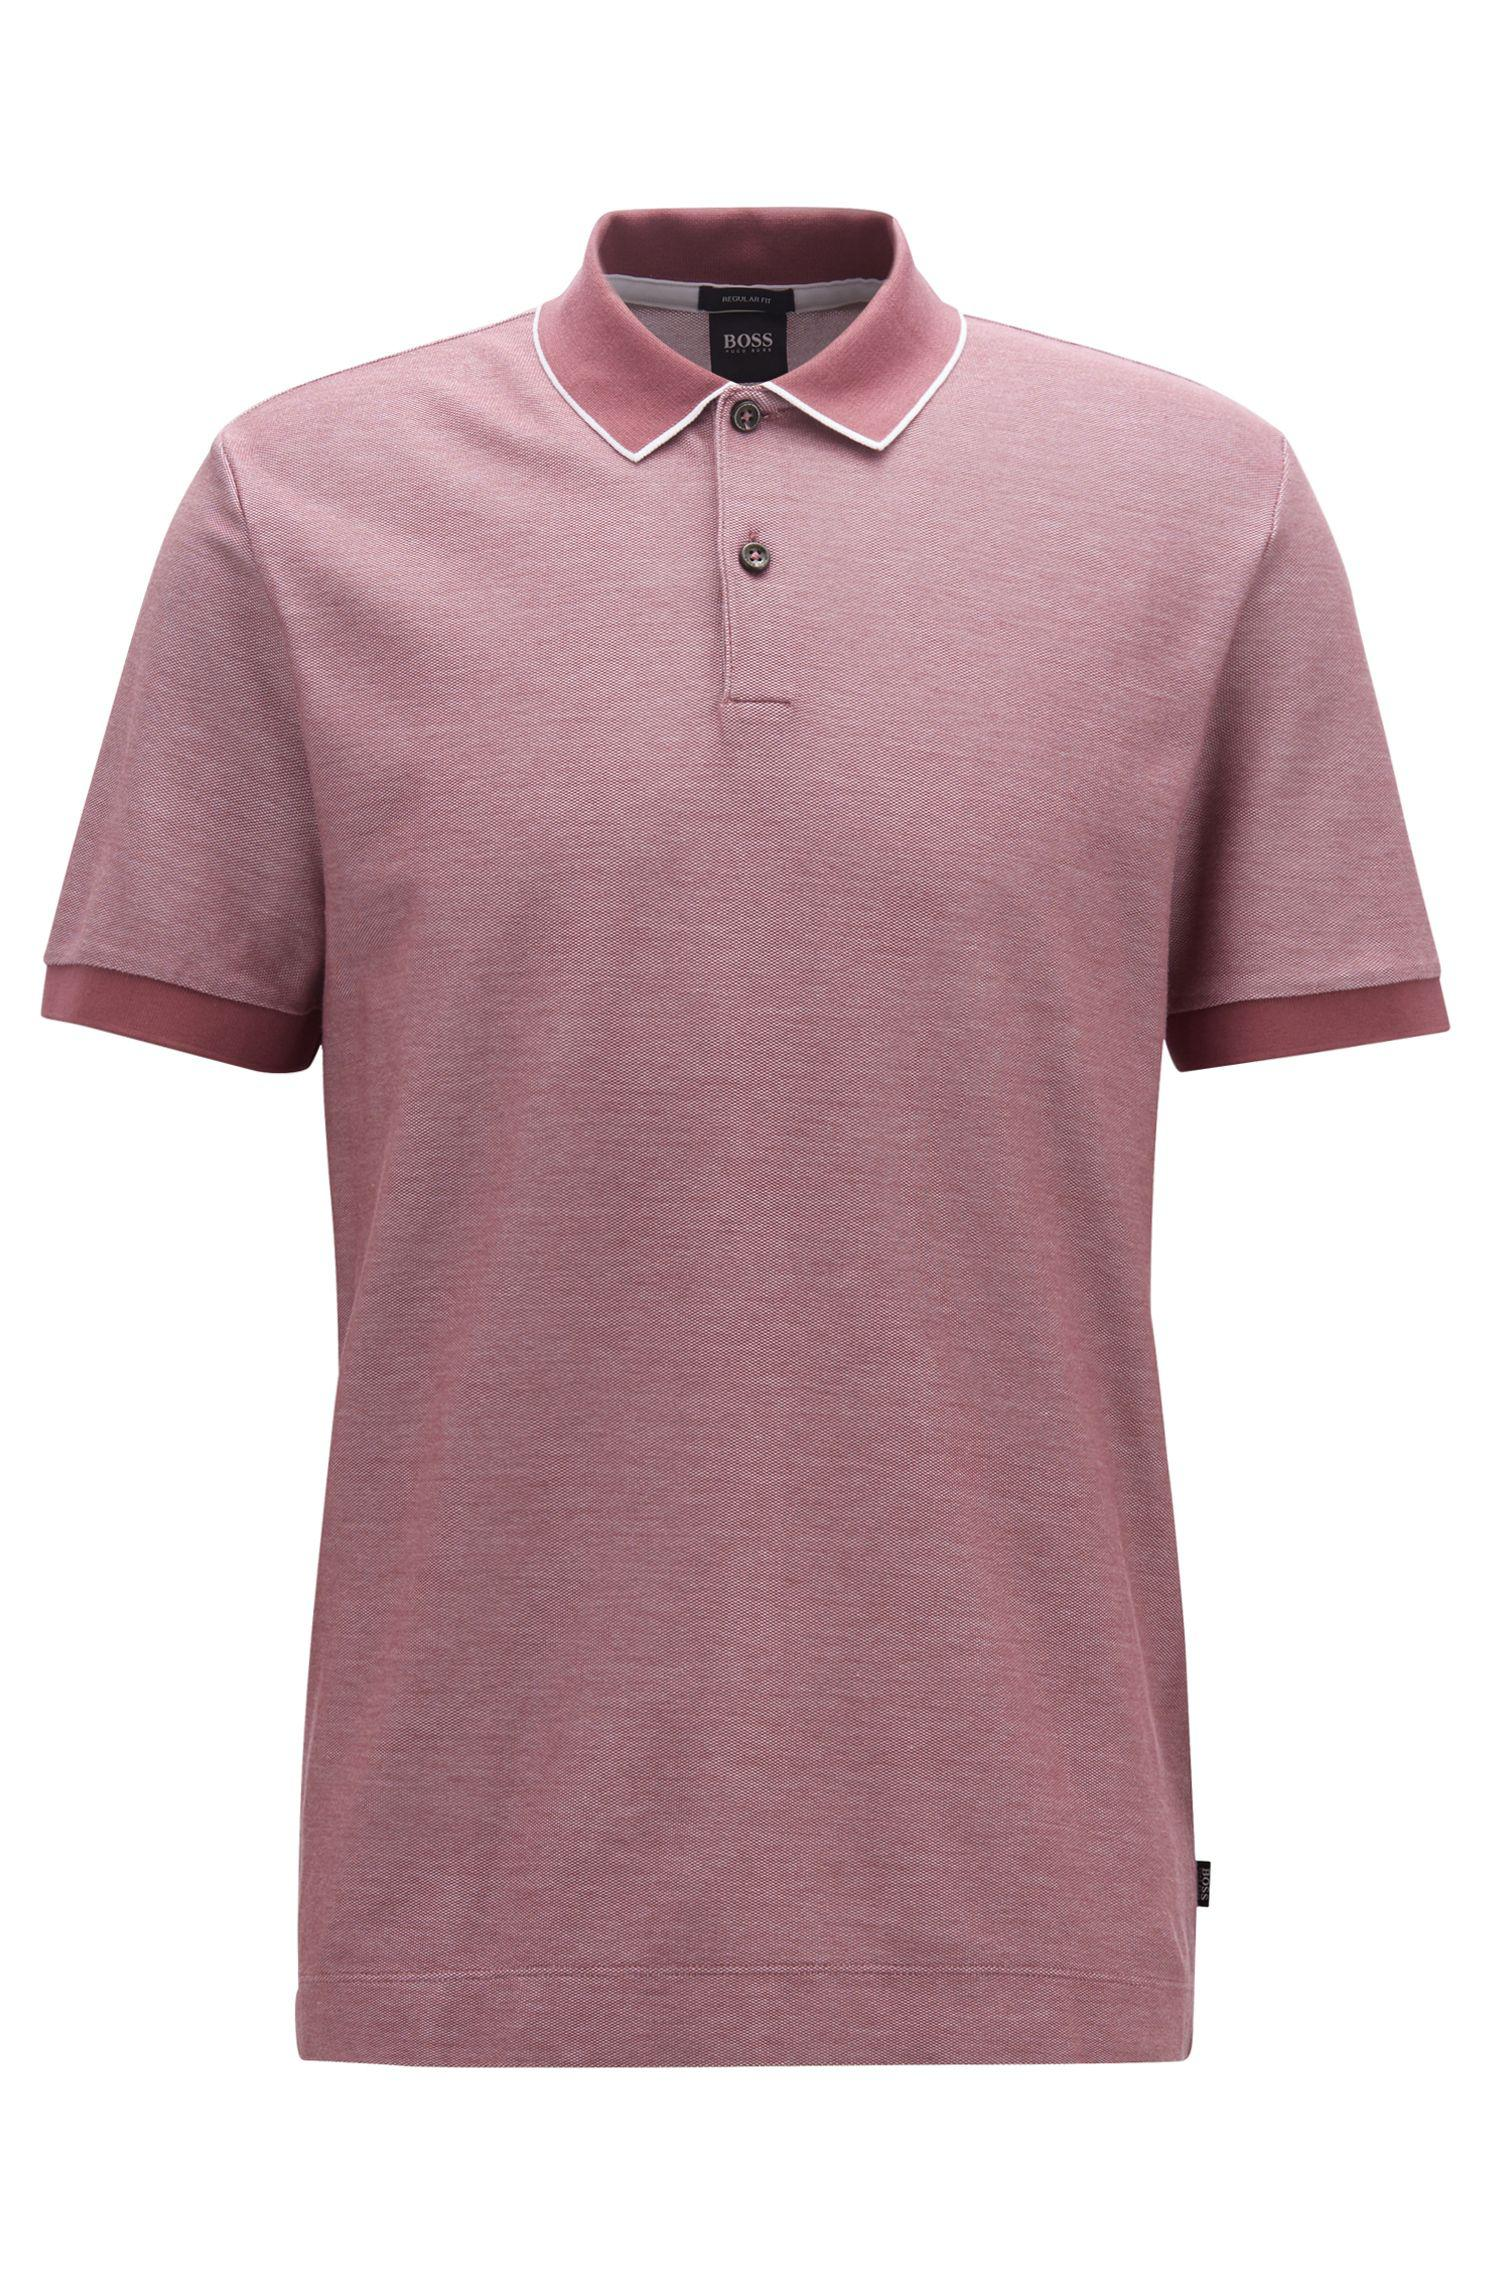 91a3fd416 BOSS - Purple Regular-fit Polo Shirt In Two-tone Honeycomb Cotton for Men.  View fullscreen